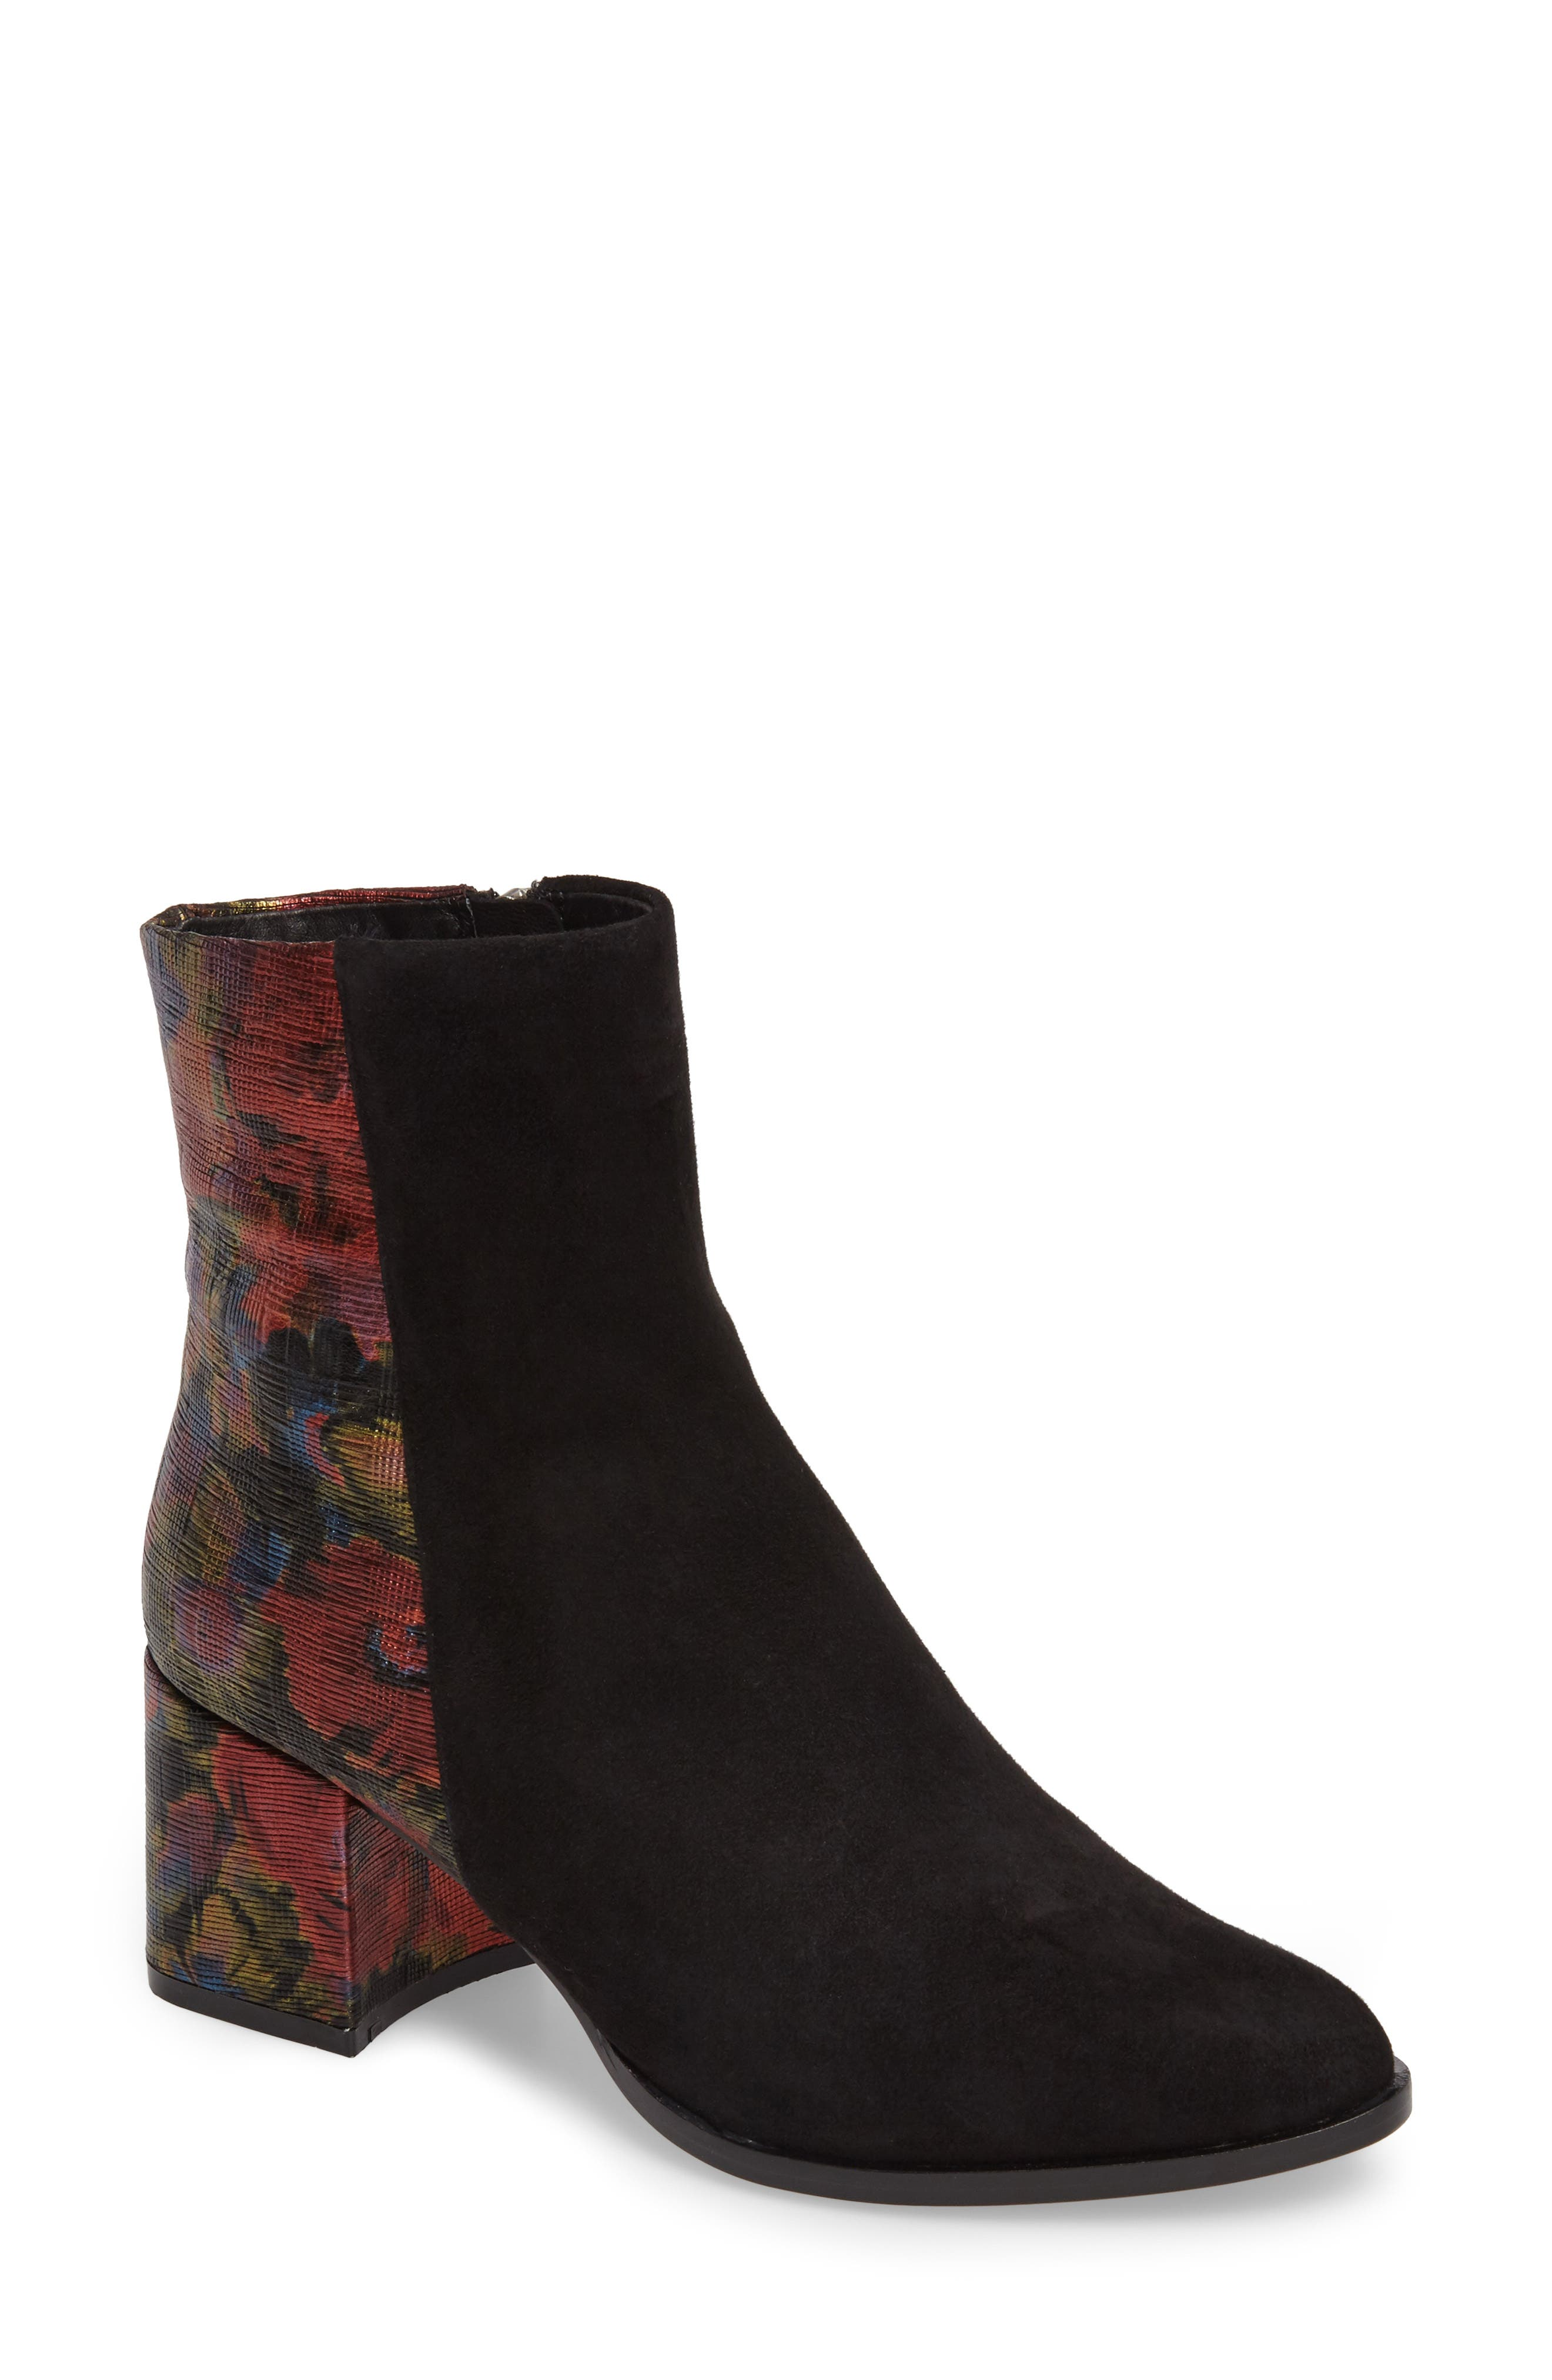 Brady Embellished Boot,                         Main,                         color, Black/ Red Suede